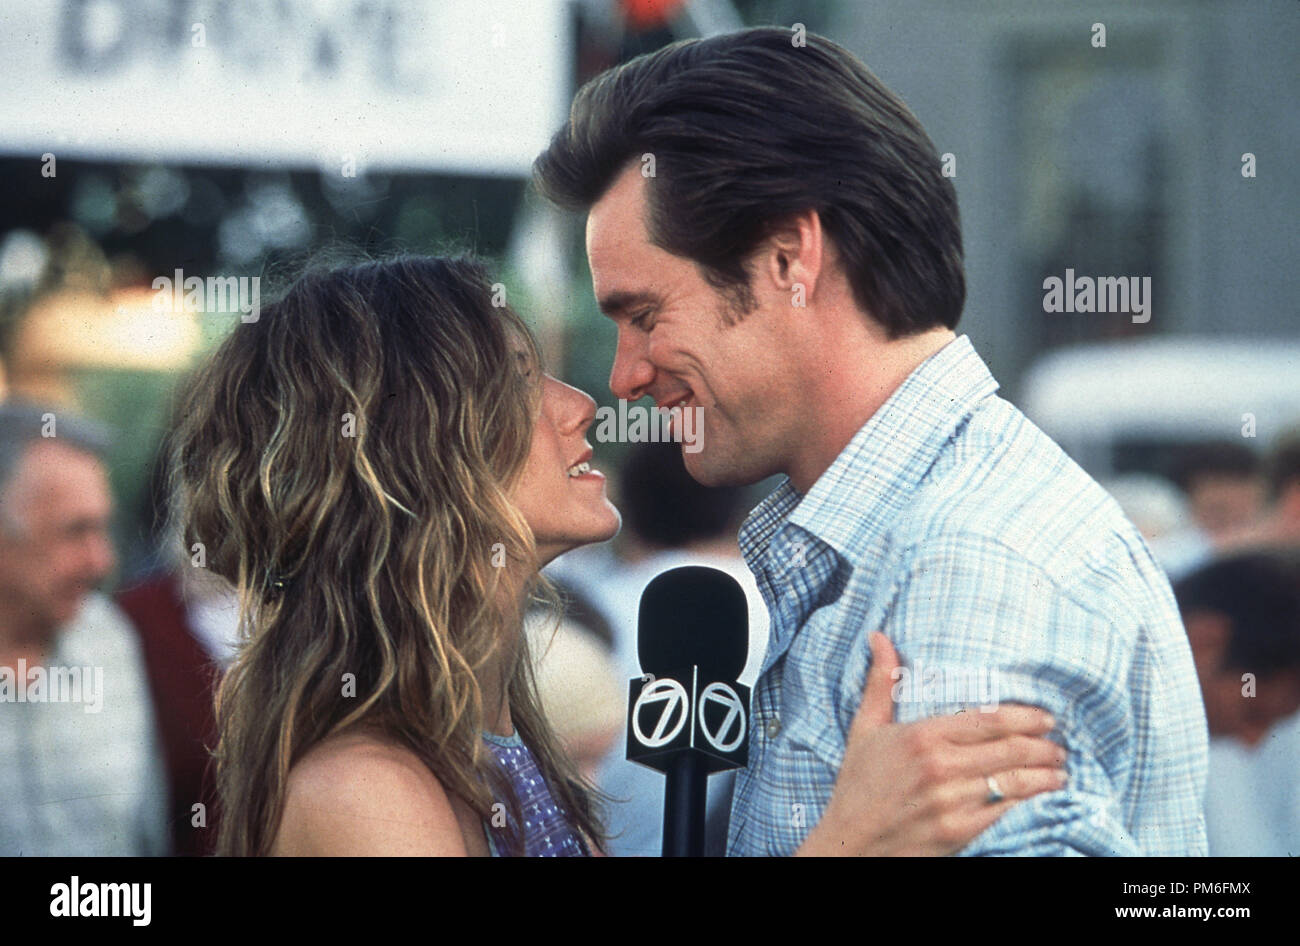 Film Still Publicity Still From Bruce Almighty Jennifer Aniston Jim Carrey 2003 Universal Photo Credit Ralph Nelson File Reference 30753871tha For Editorial Use Only All Rights Reserved Stock Photo Alamy